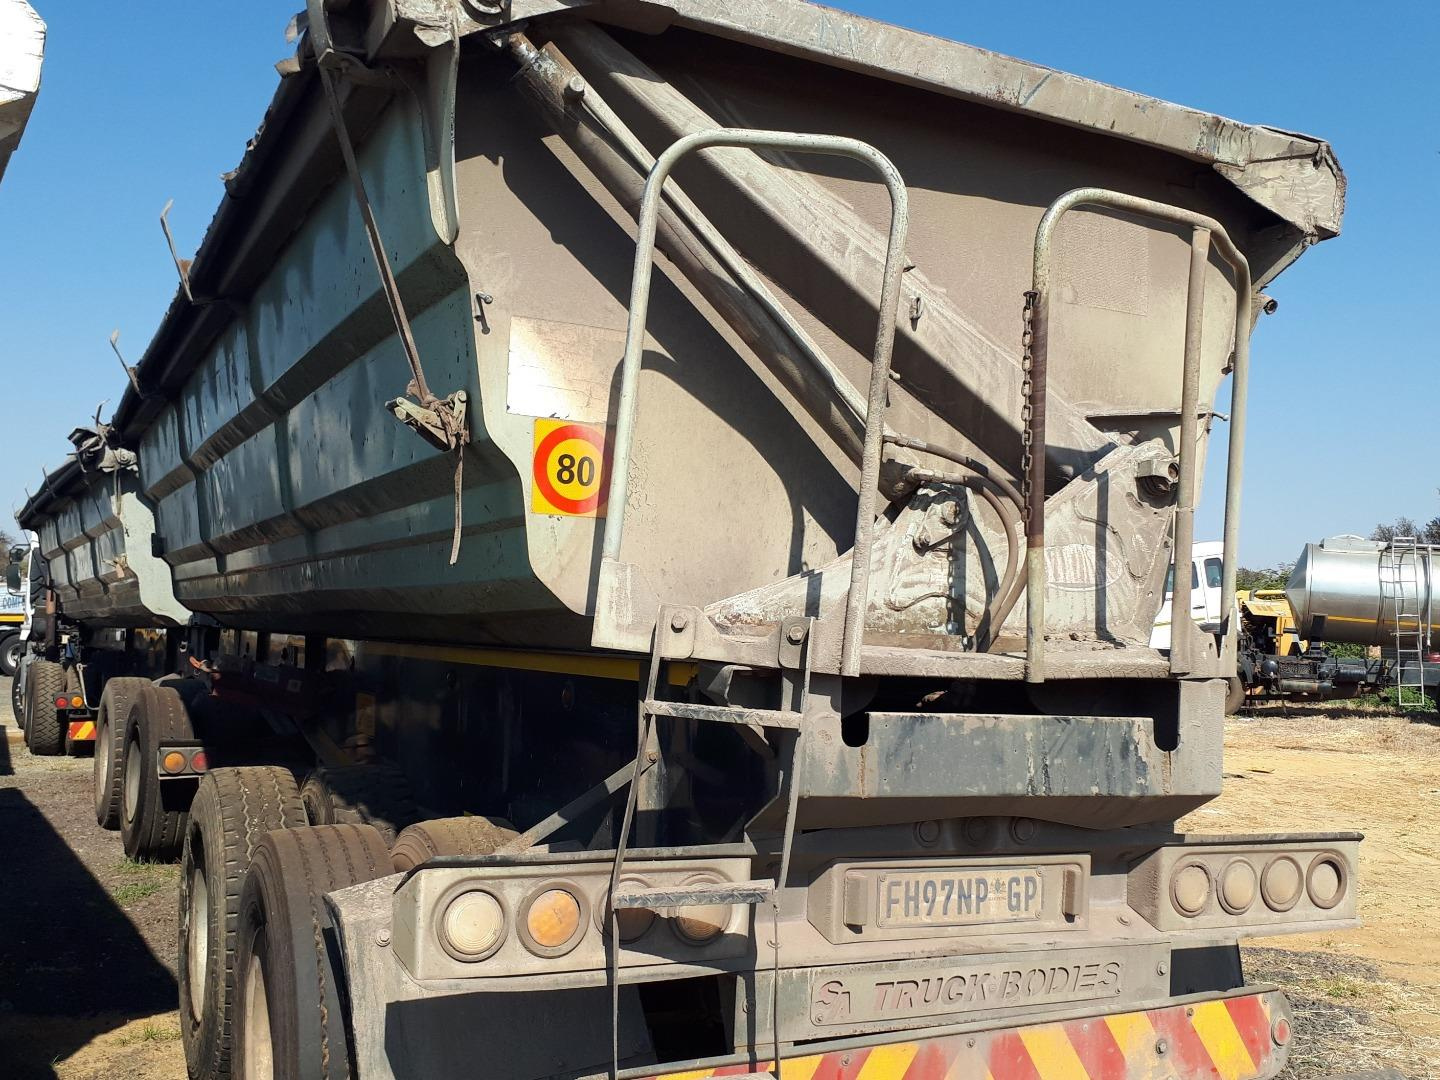 Trans Wes Auctioneers Welcome To Trans Wes Auctioneers Home Of Quality Used Trucks Trailers